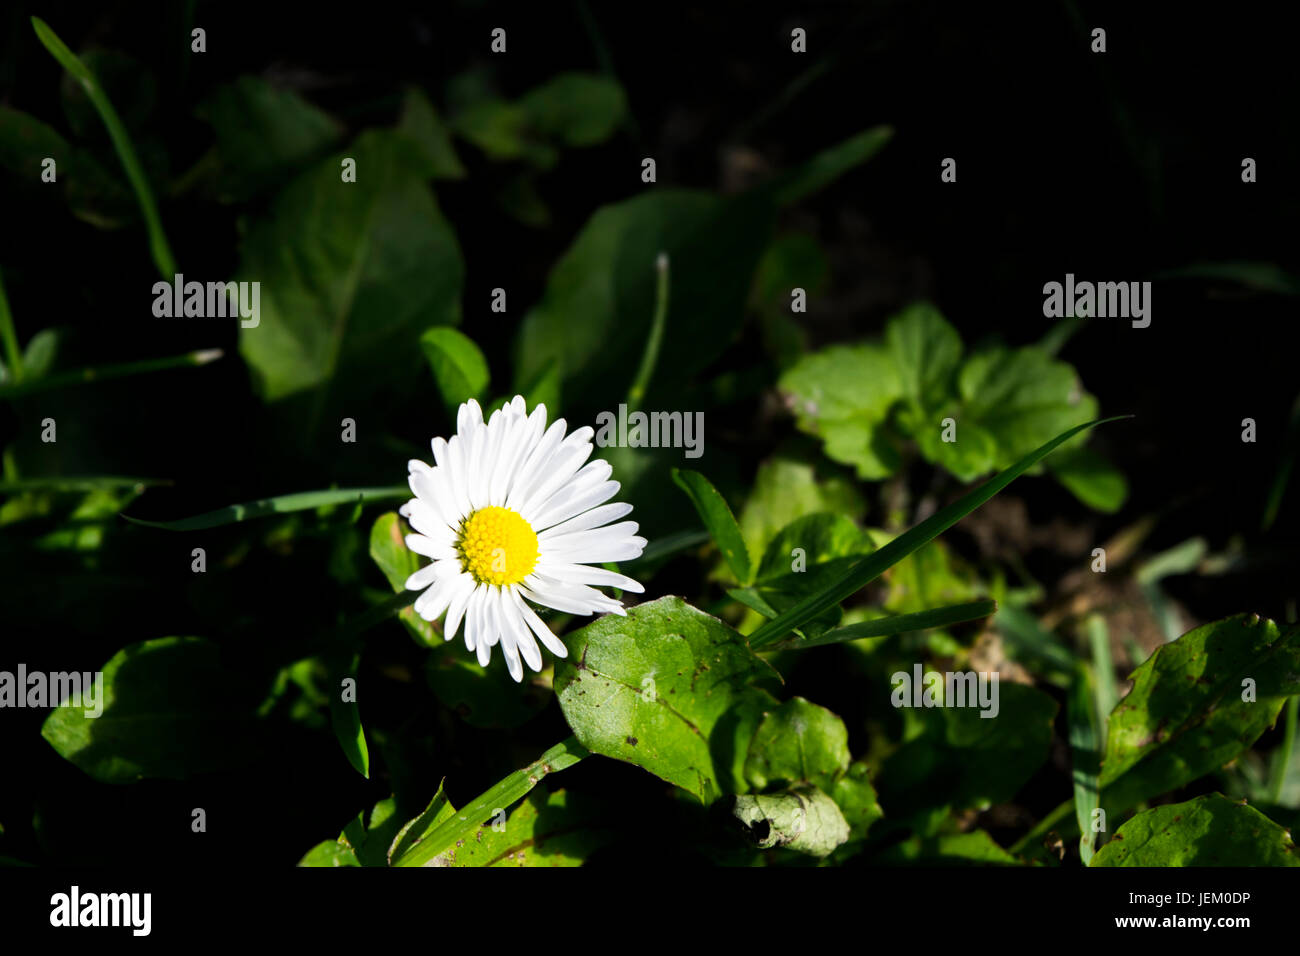 Simple yet elegant daisy flower taken in artificial light at night time. - Stock Image